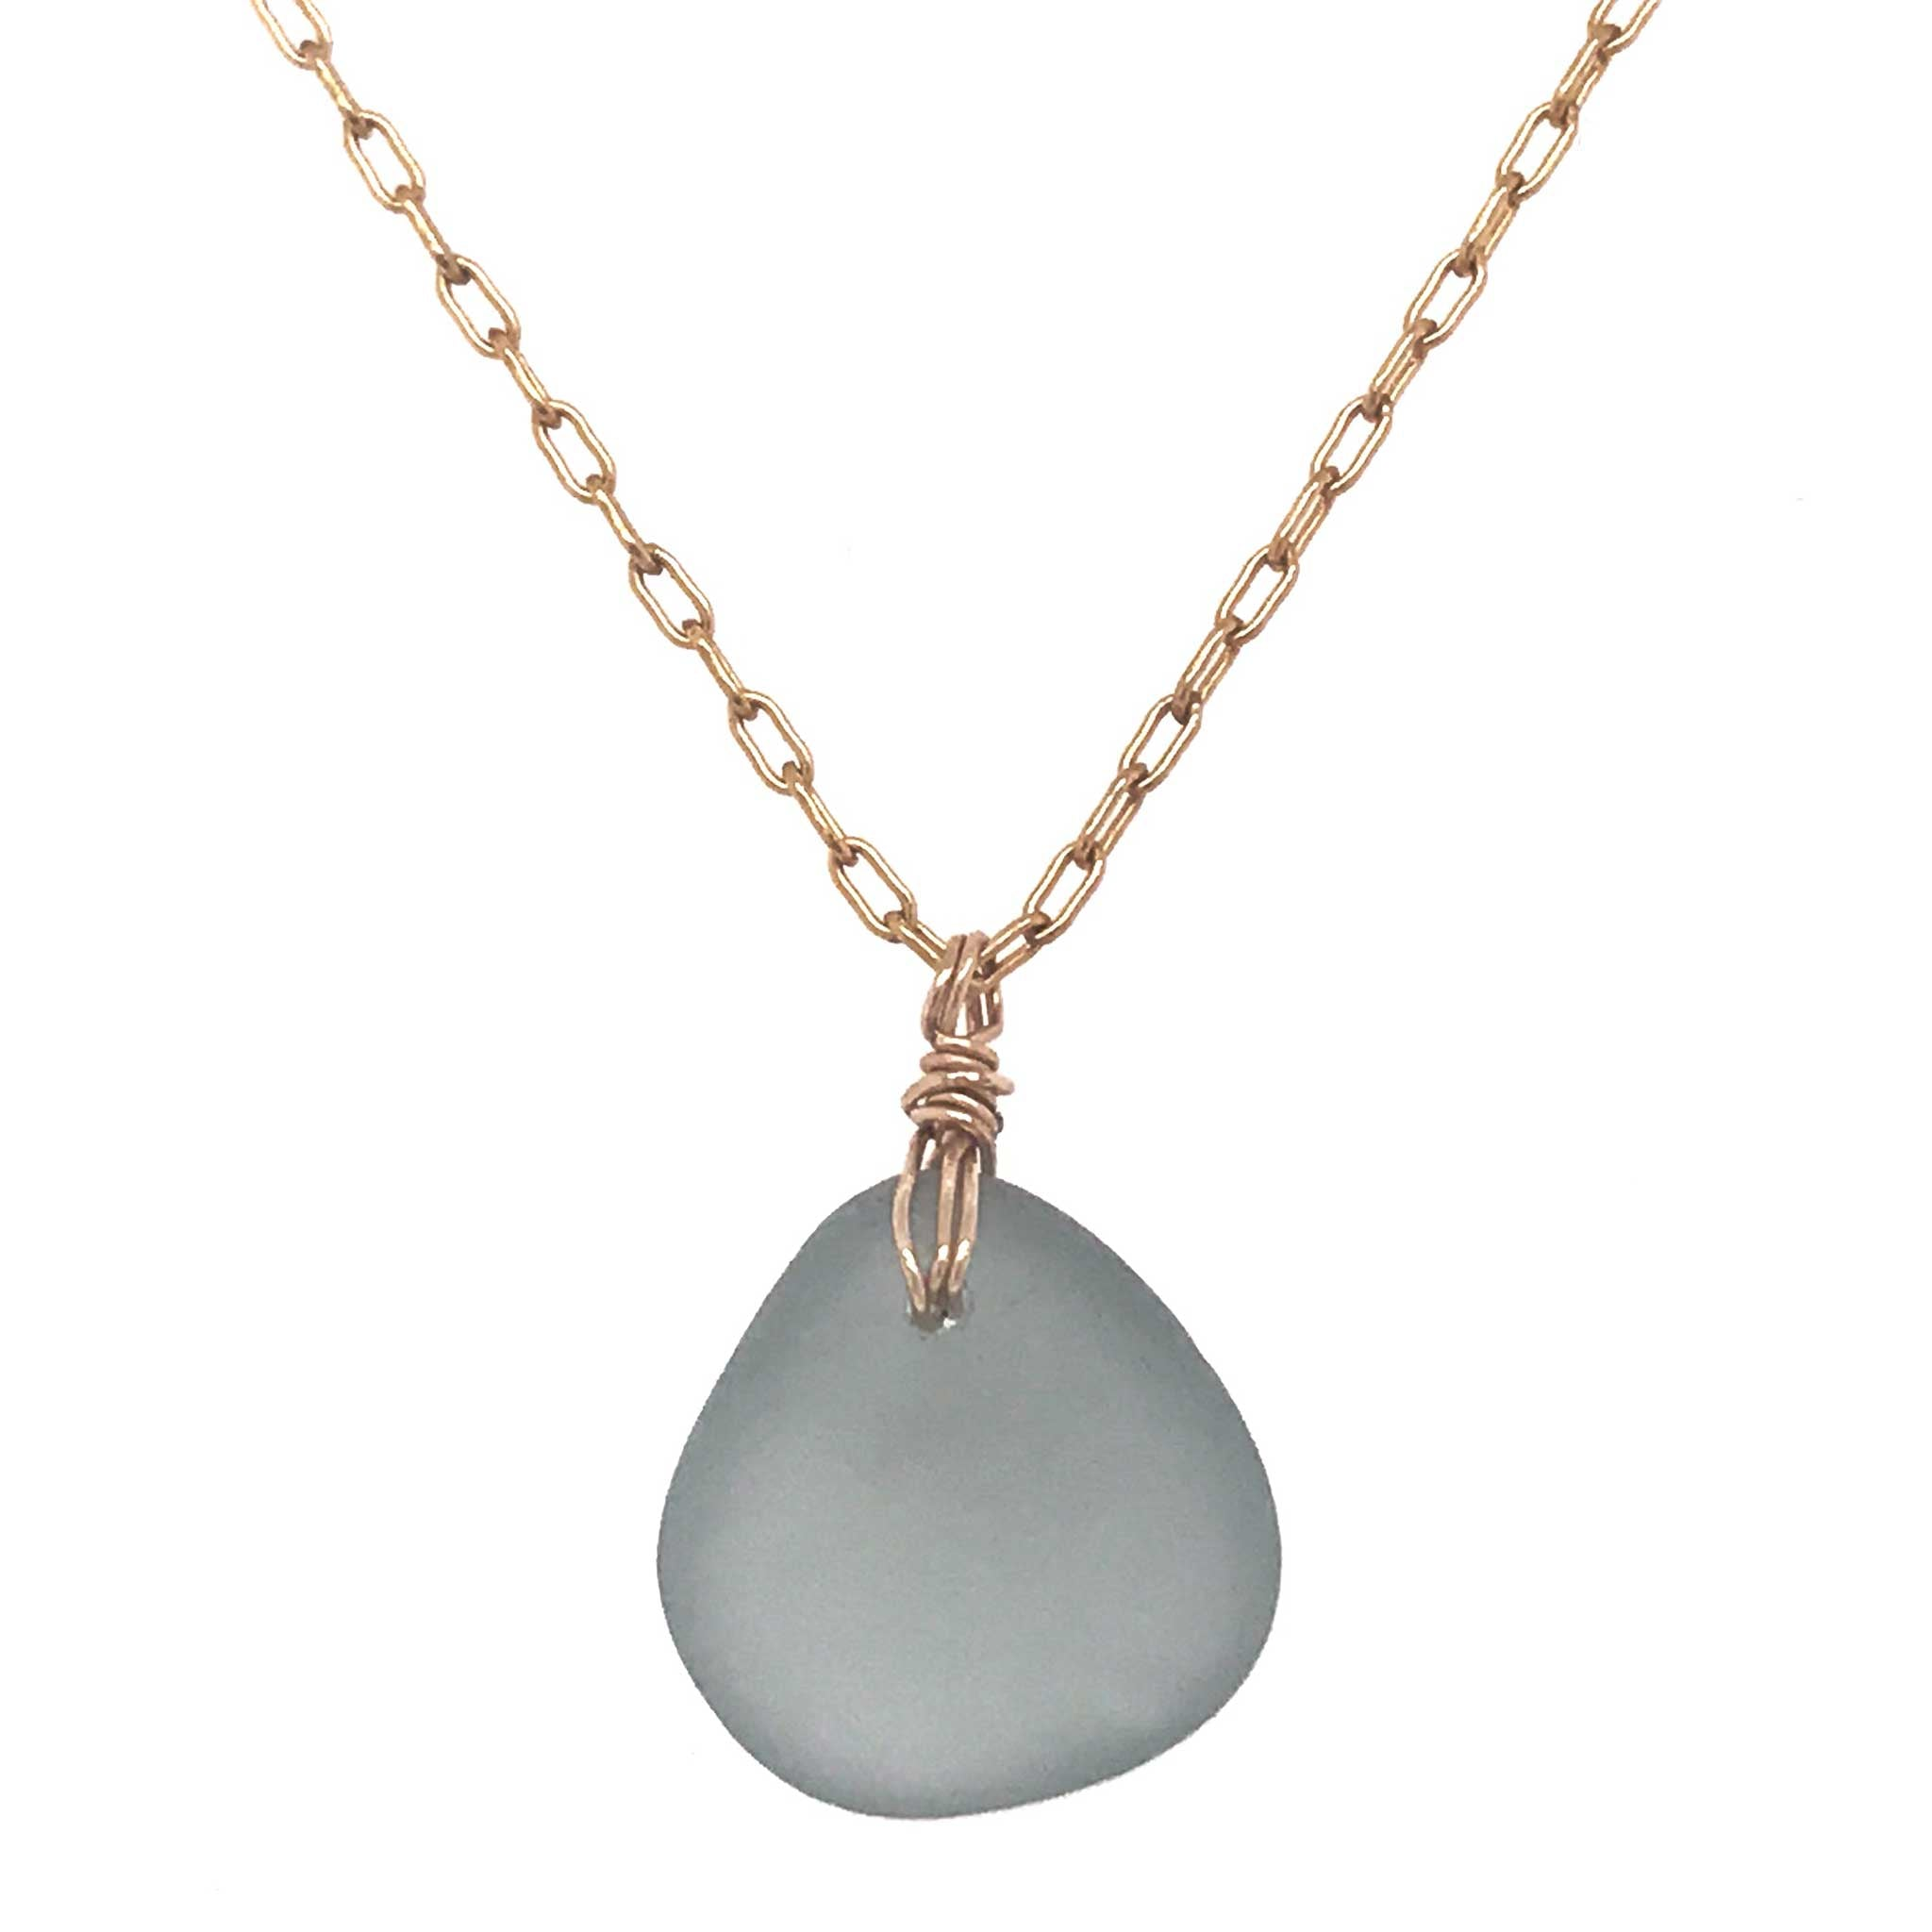 rare grey sea glass pendant on gold necklace kriket broadhurst jewellery Sydney